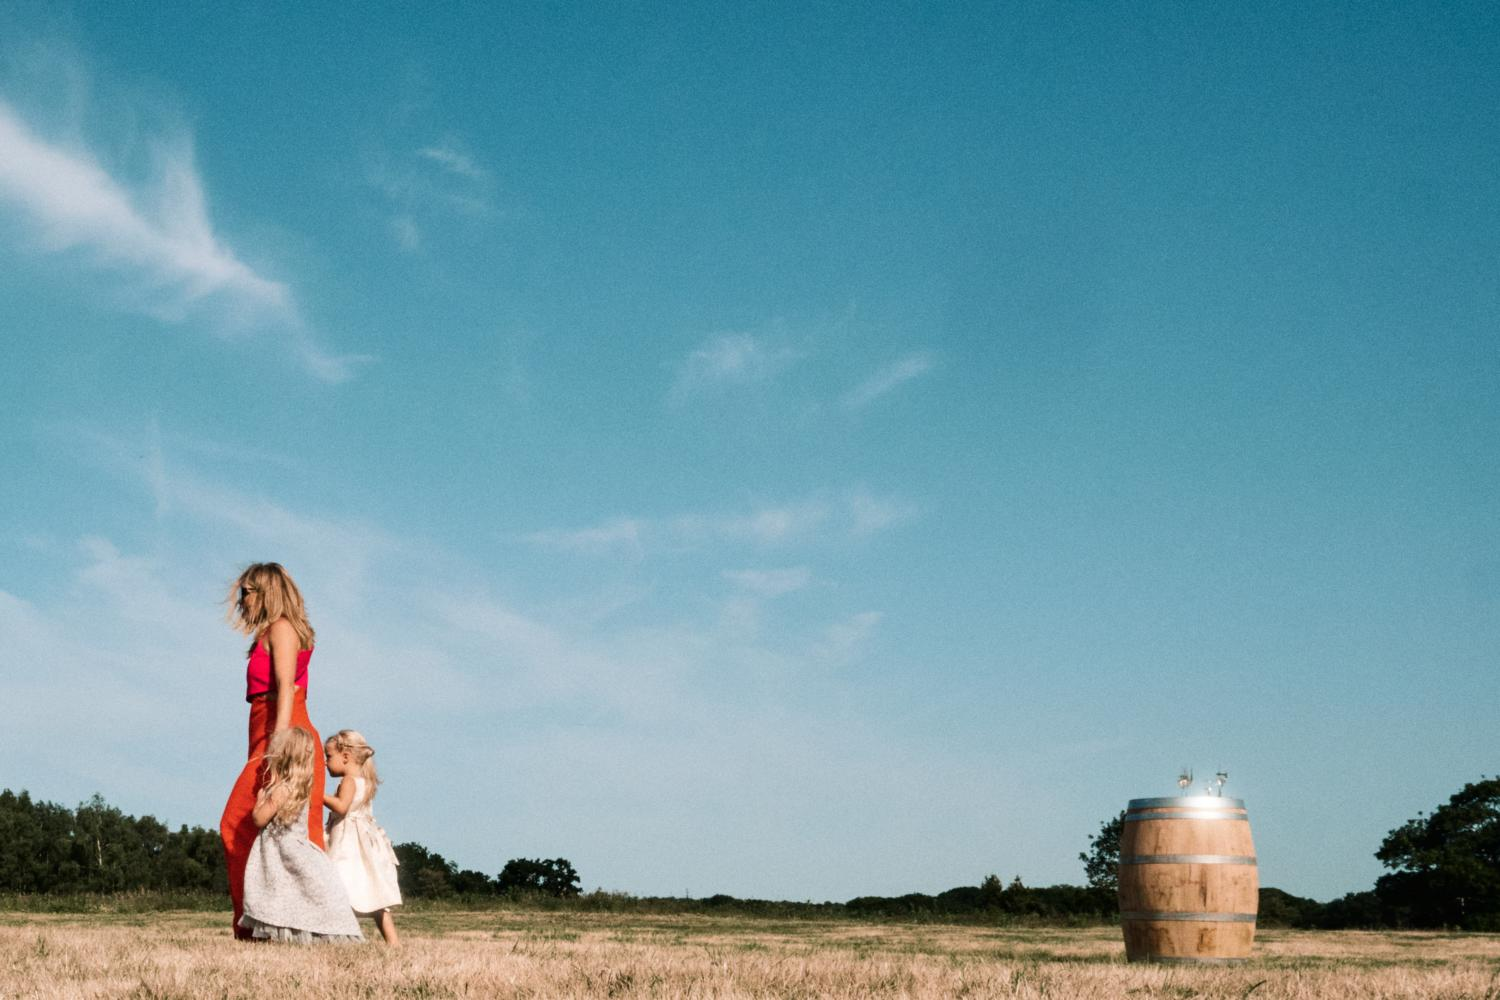 A mother walks her daughters in the opposite direction of a barrel in a field